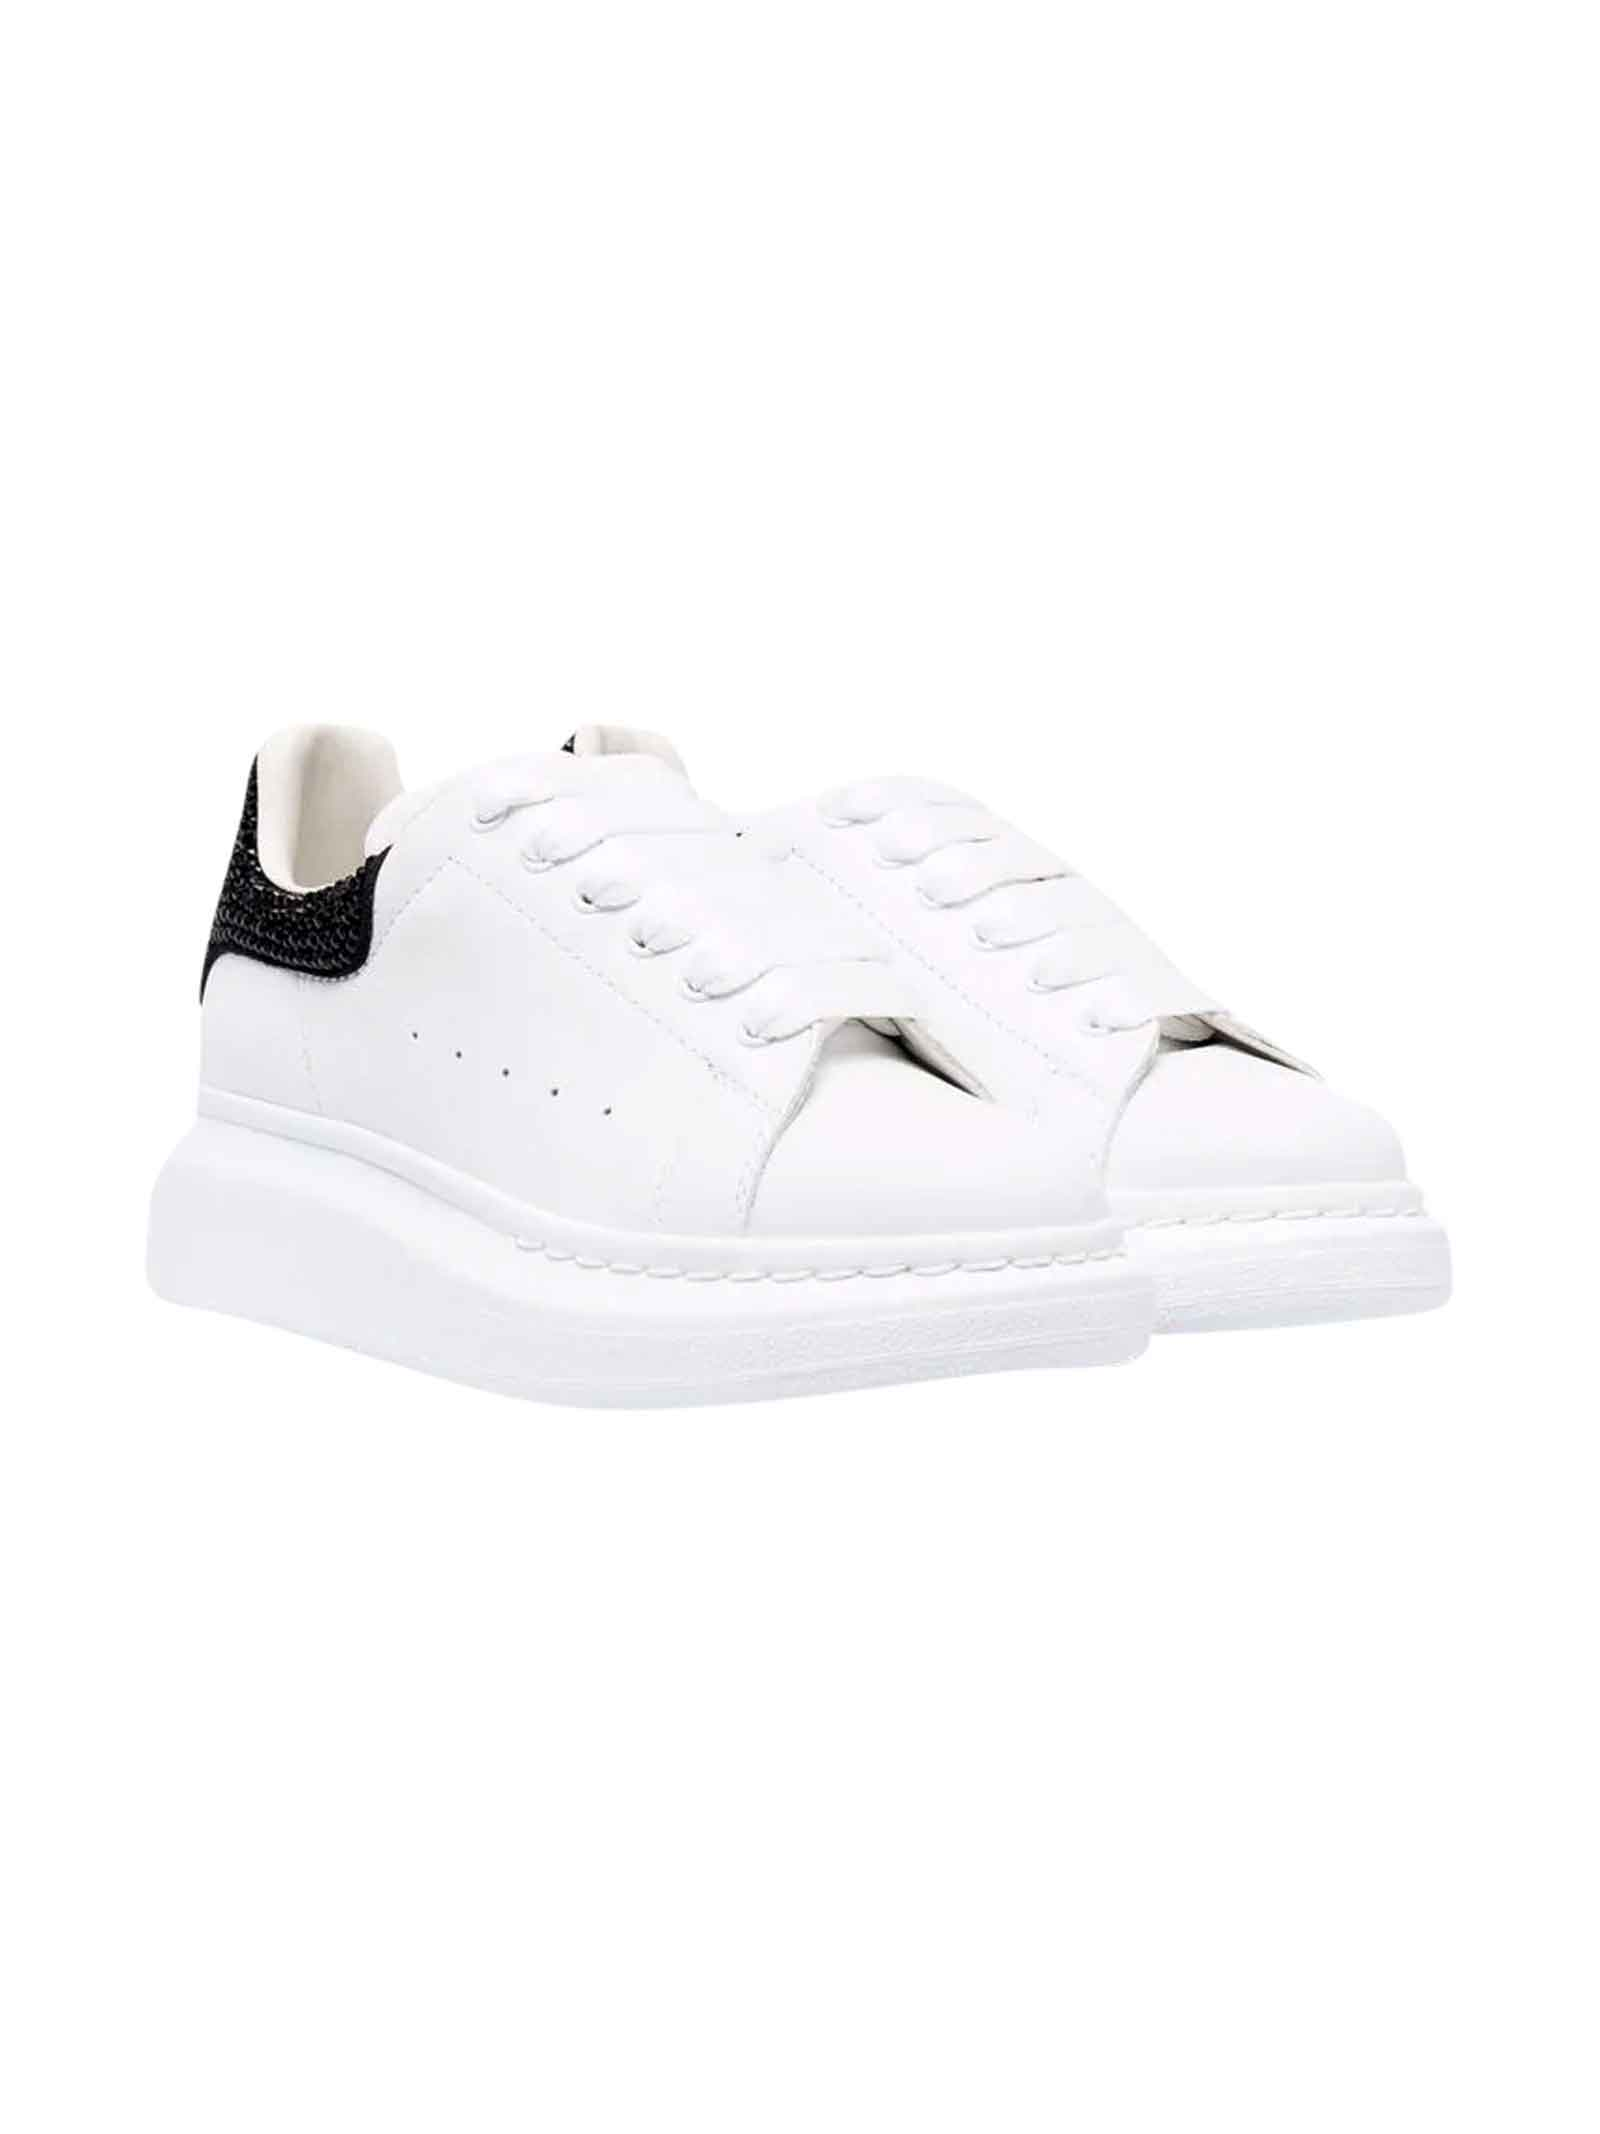 Alexander McQueen White Sneakers With Reinforced Heel, Round Tip And Laces Kids